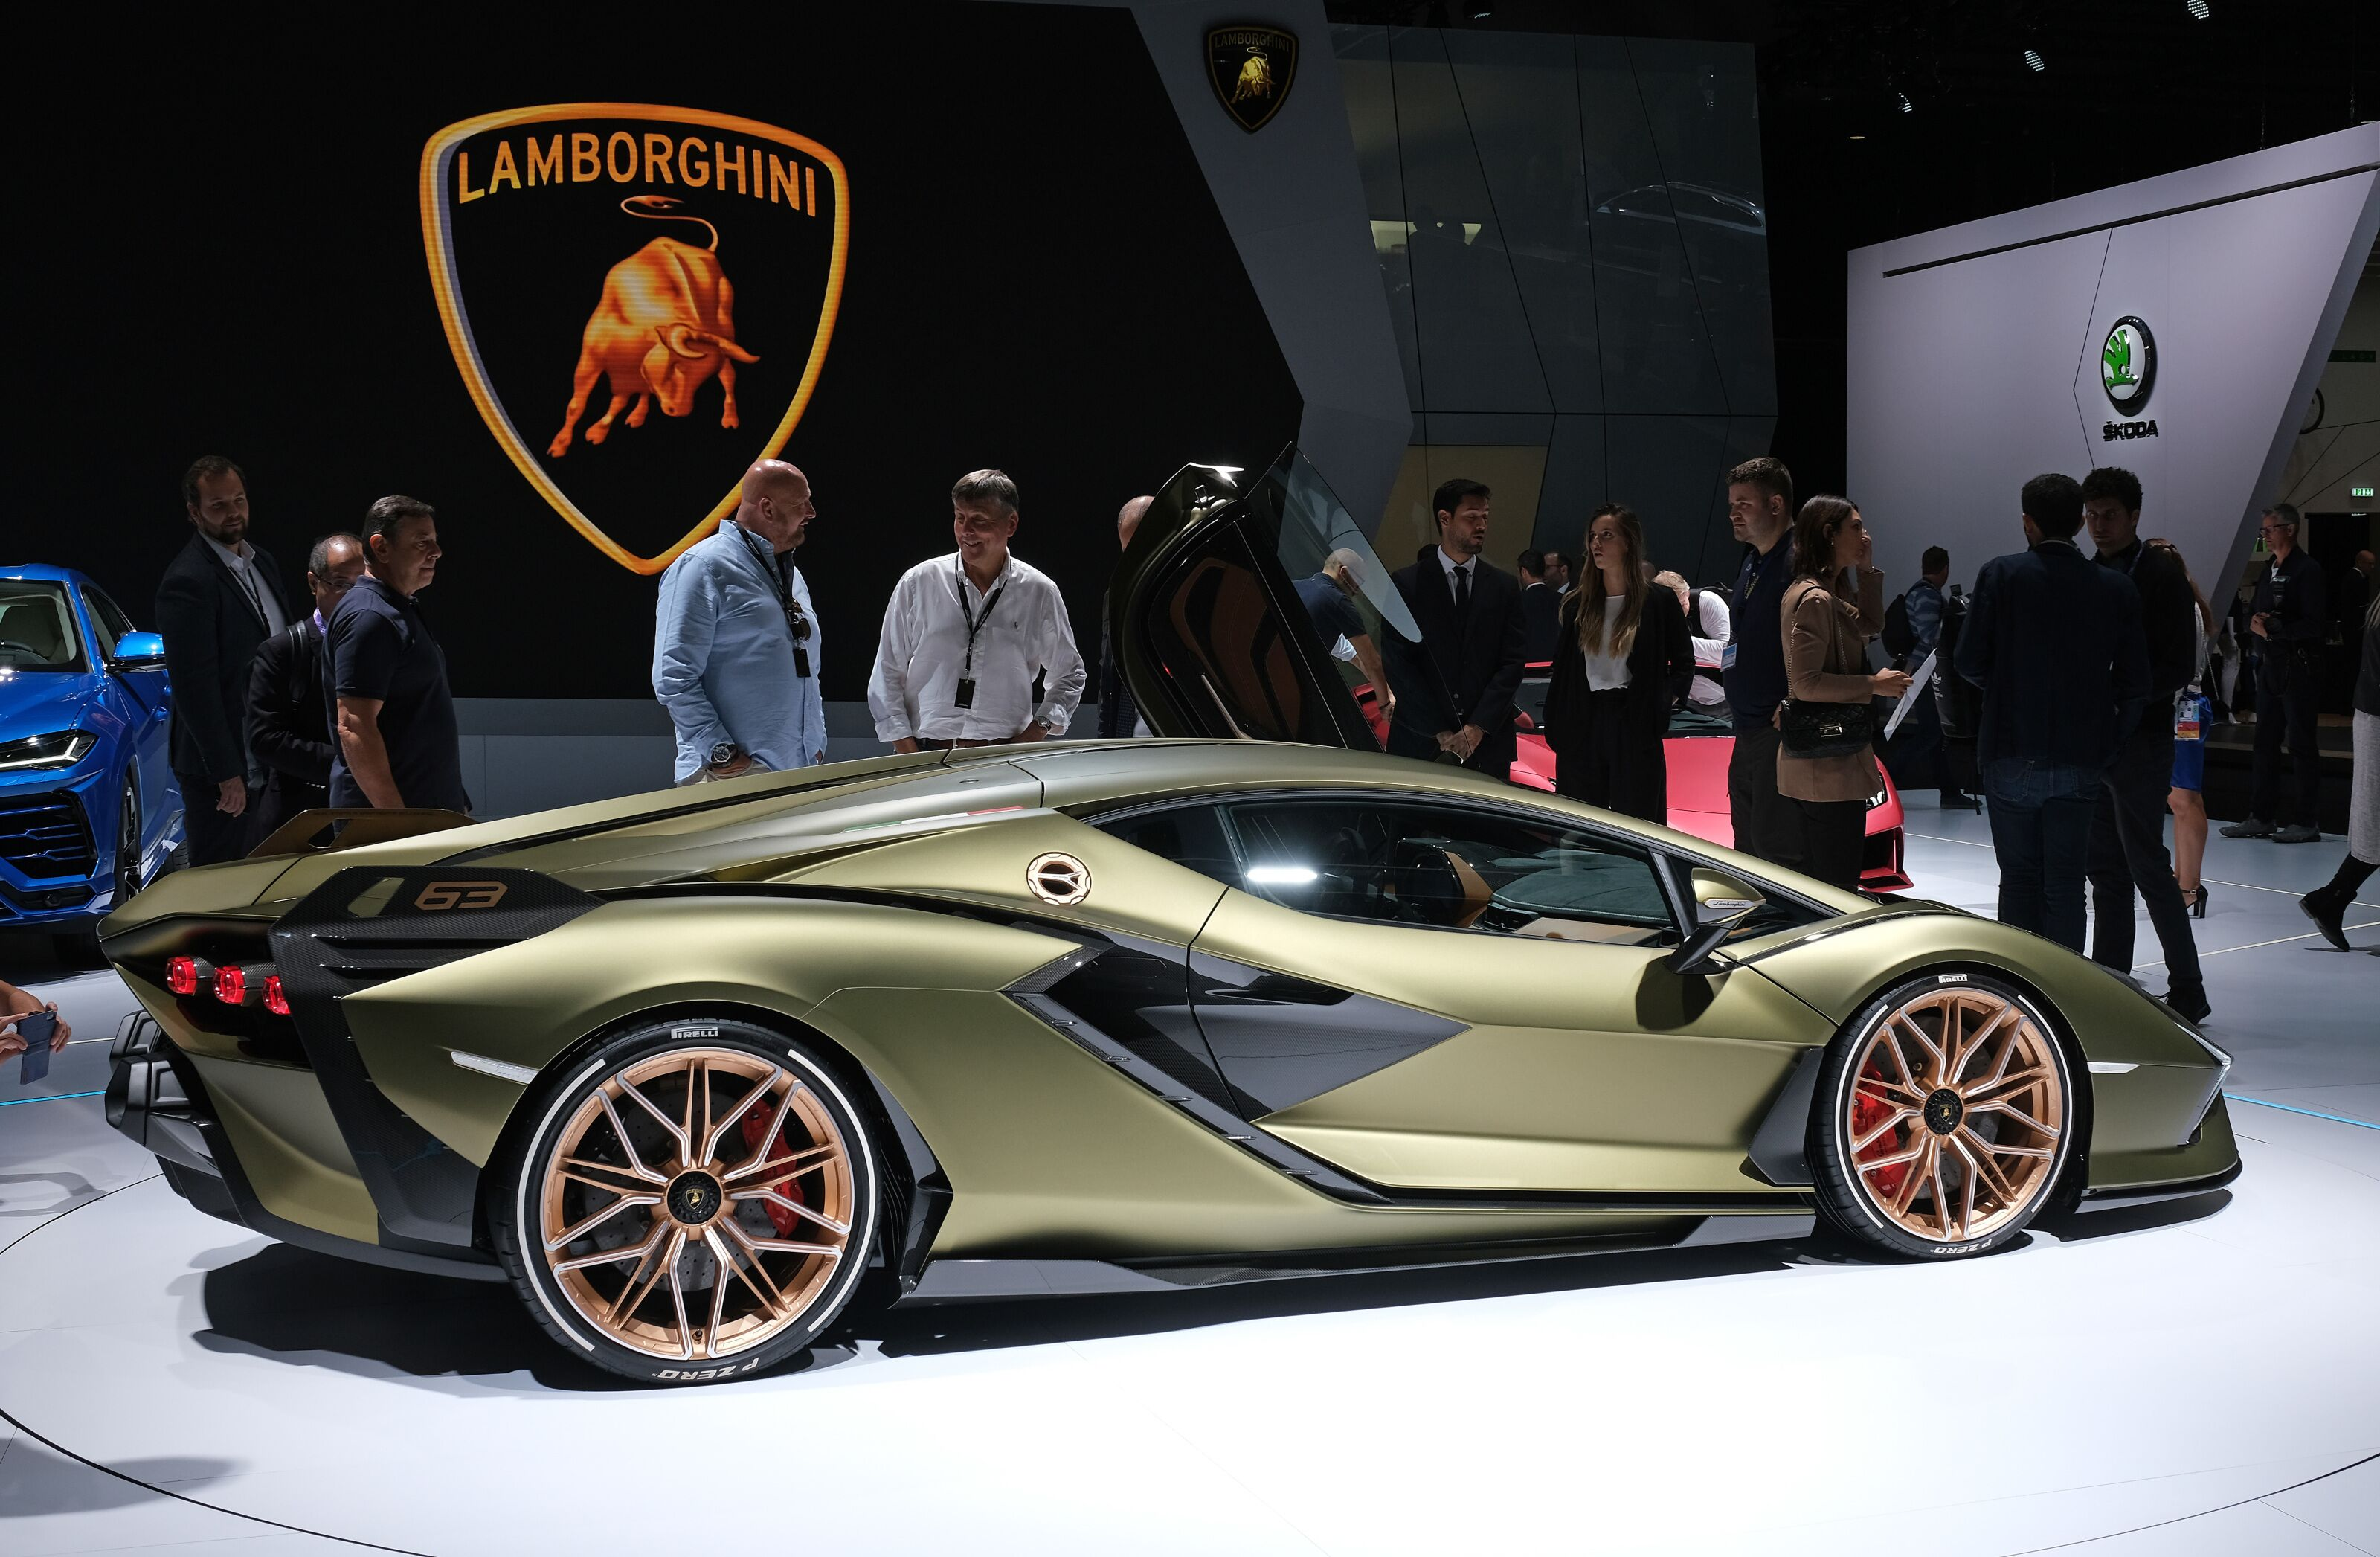 Not a Drill: Lamborghini Teases Another New V12 Hypercar